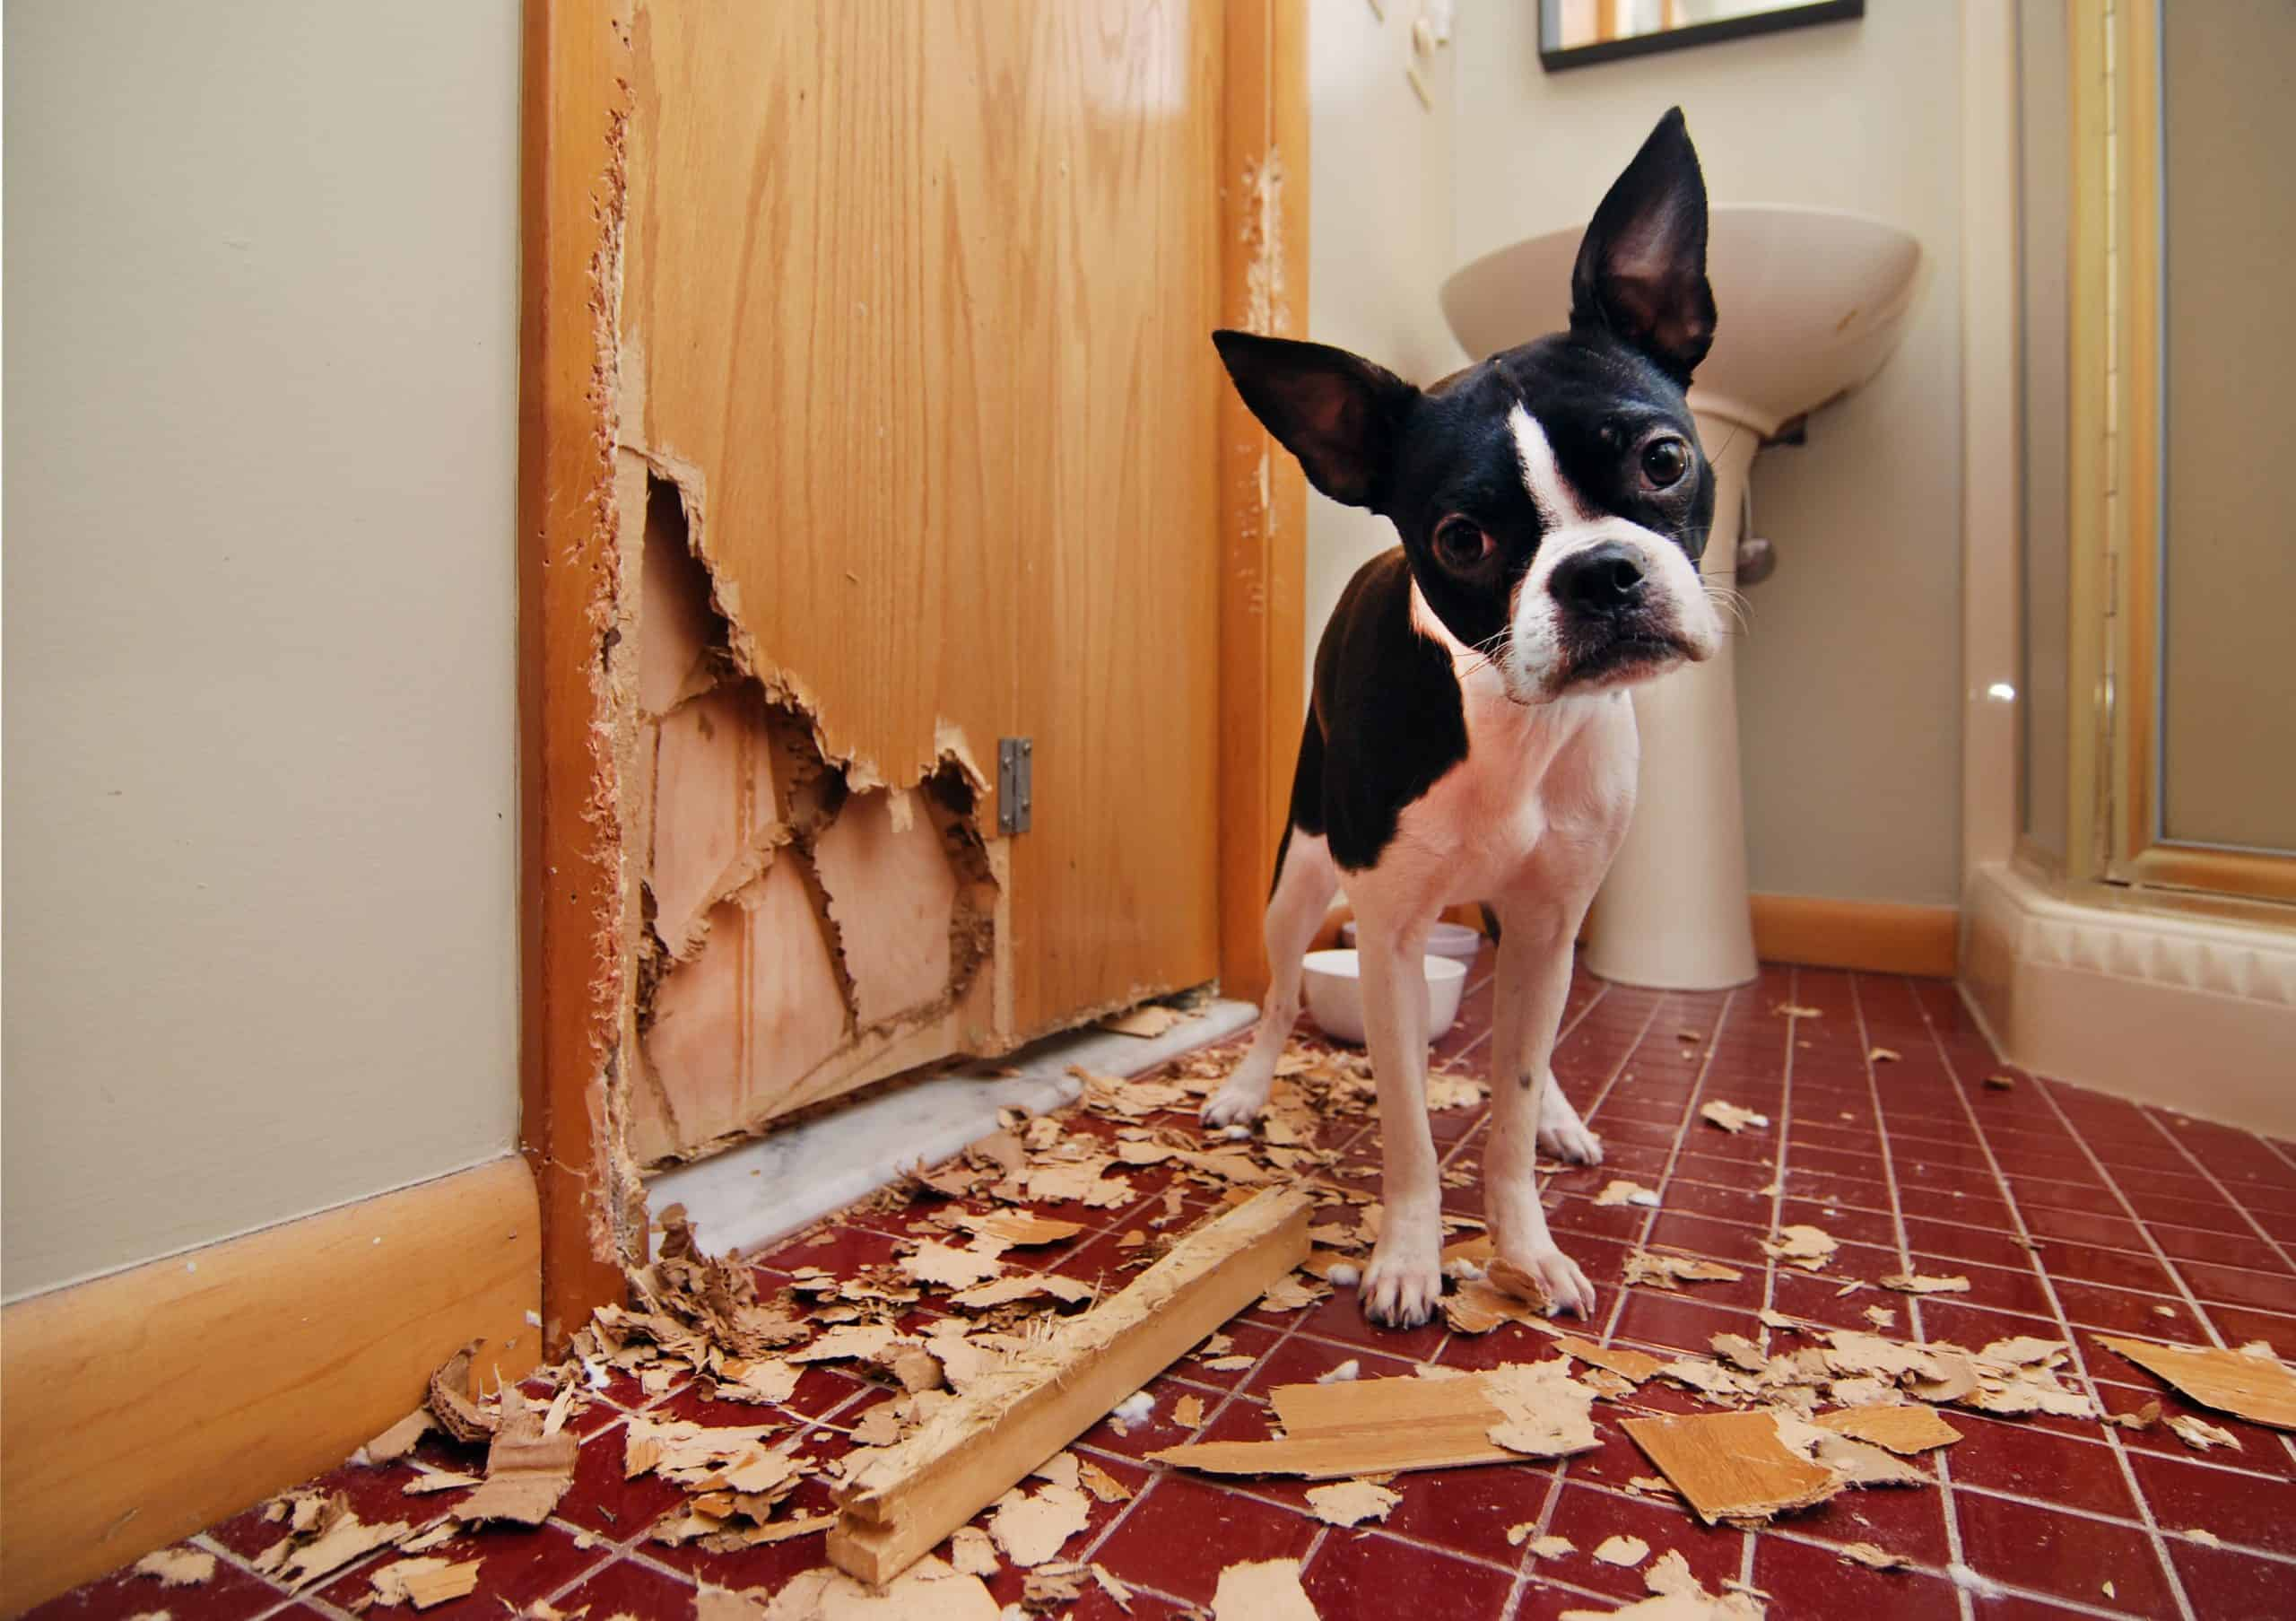 Boston terrier chews door. Don't let your dog's chewing become obsessive or destructive.